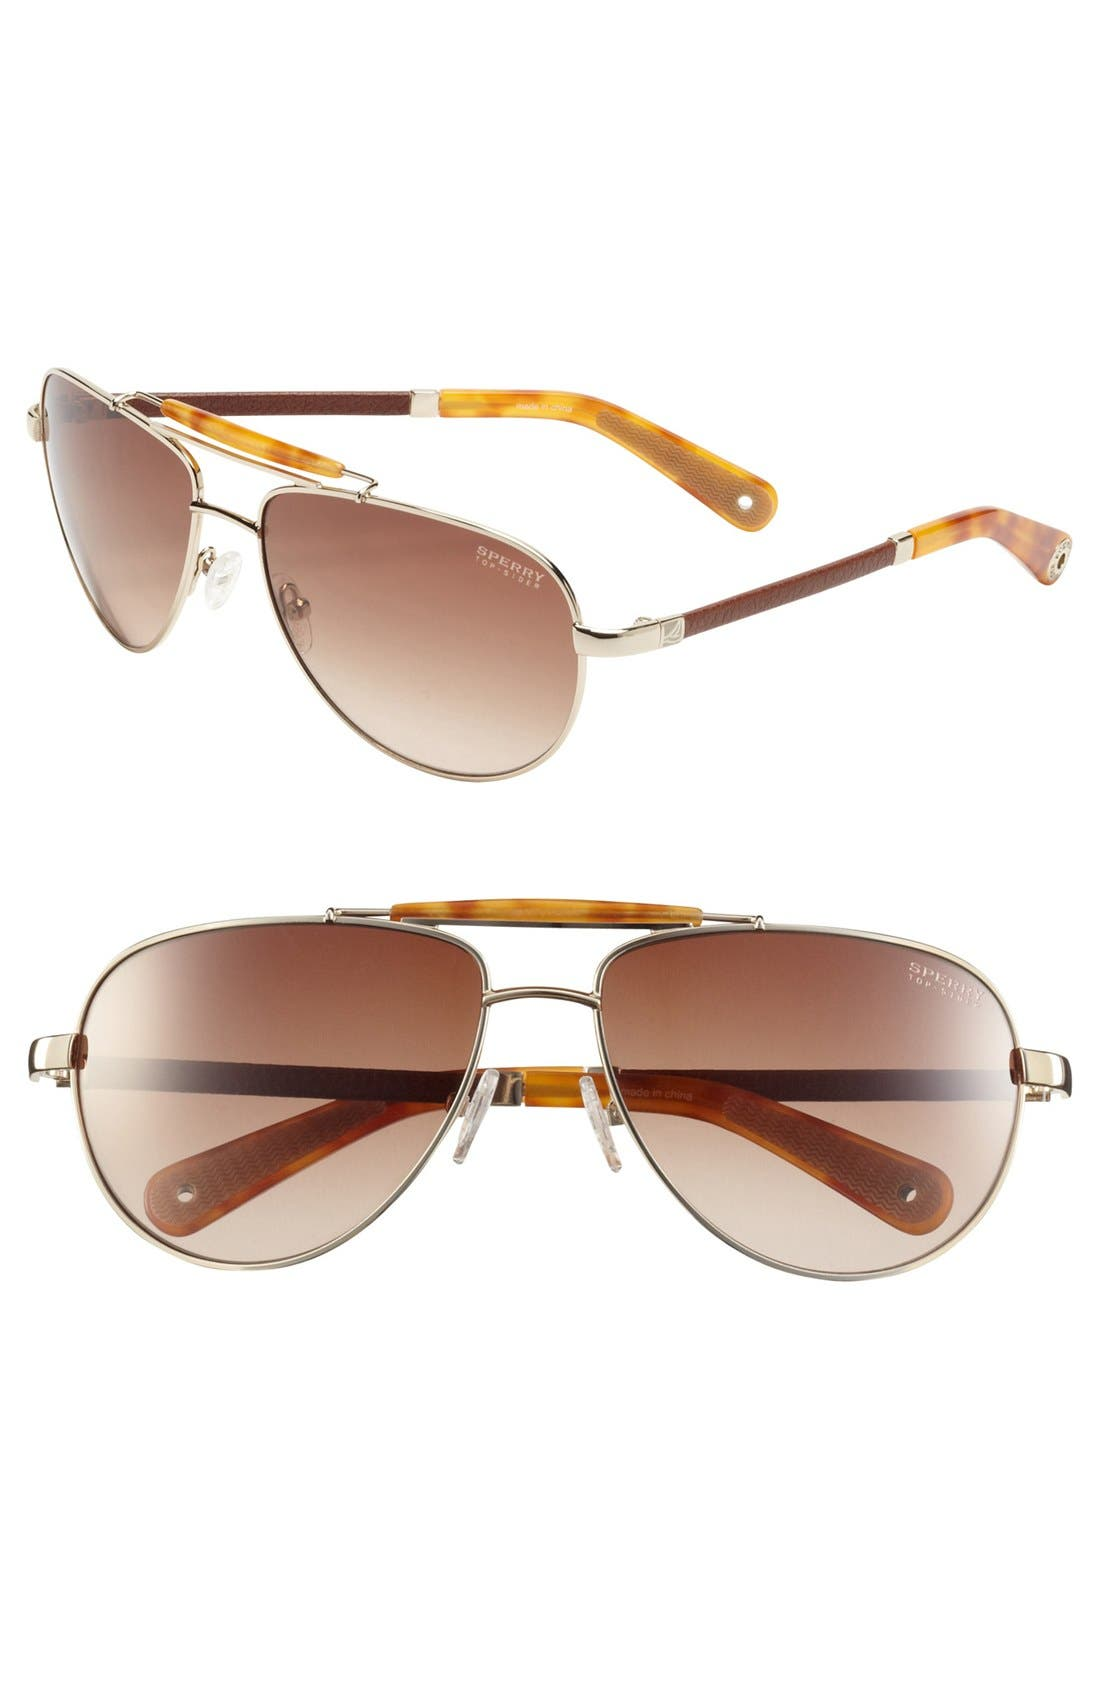 Alternate Image 1 Selected - Sperry Top-Sider® 'Vineyard Haven' 60mm Aviator Sunglasses (Online Only)